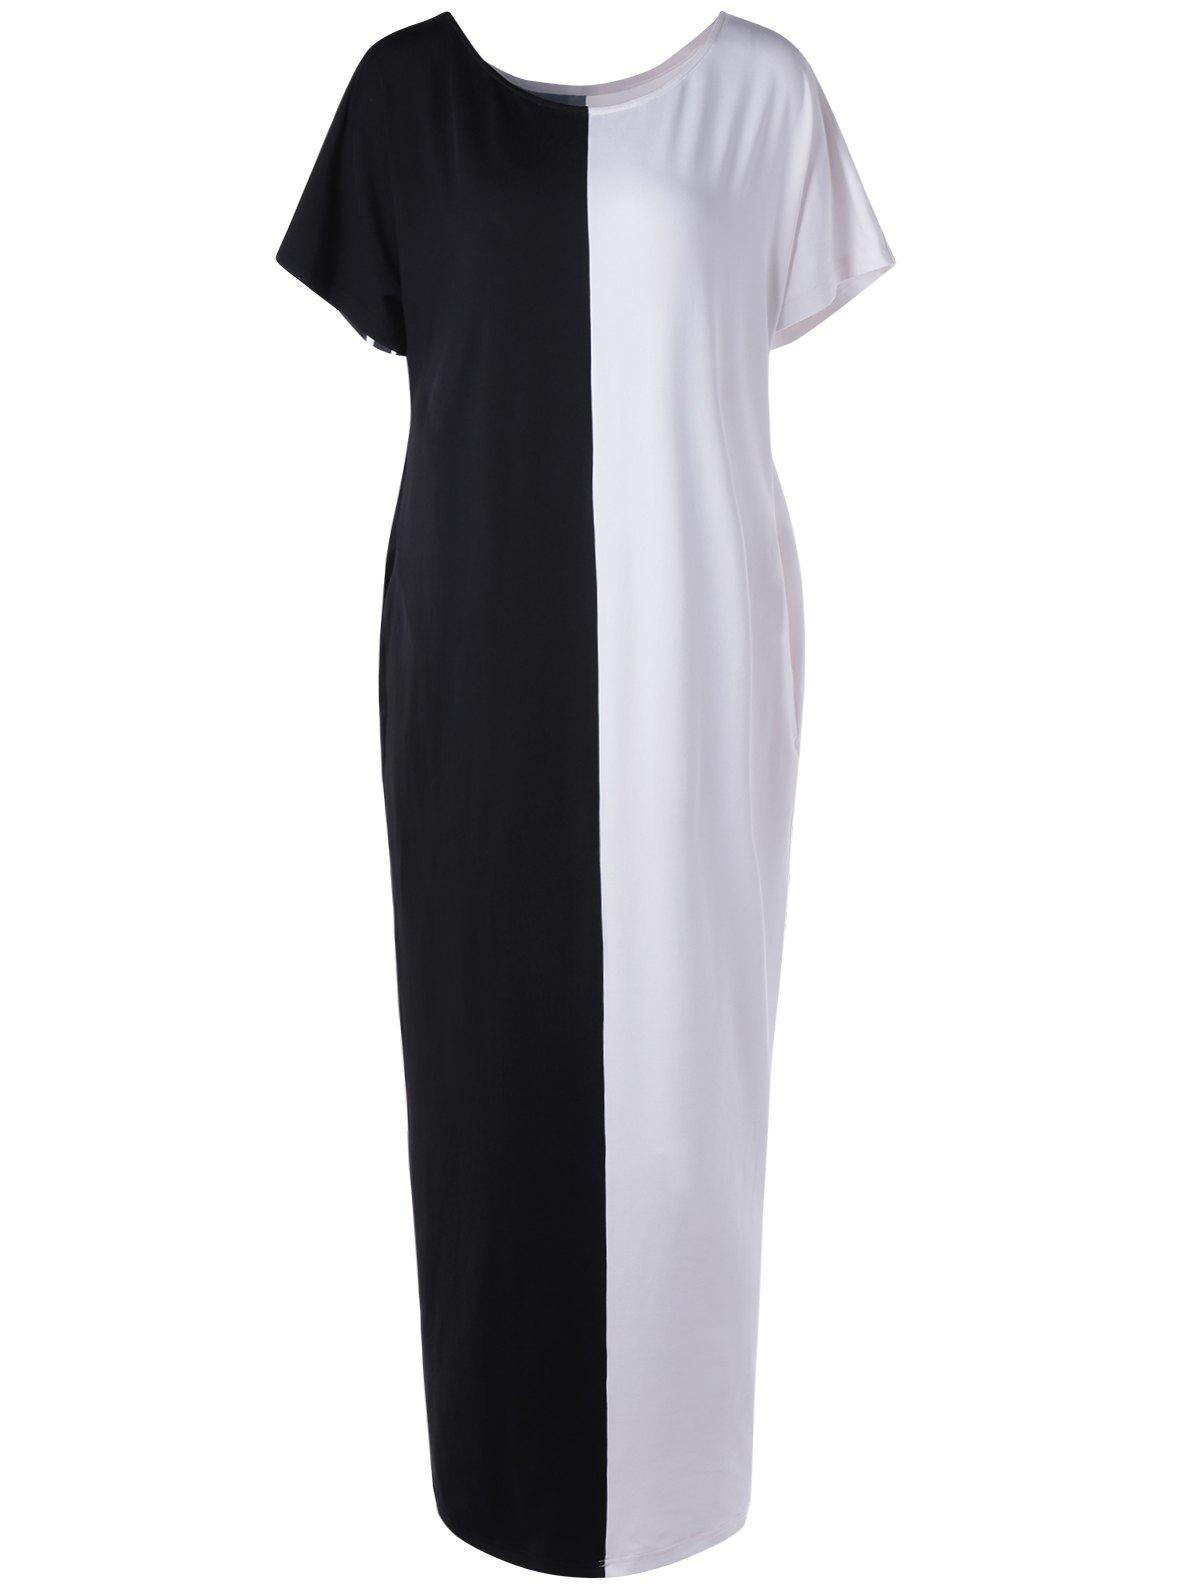 Stylish Black And White Color Block Dress For Woman - WHITE/BLACK M